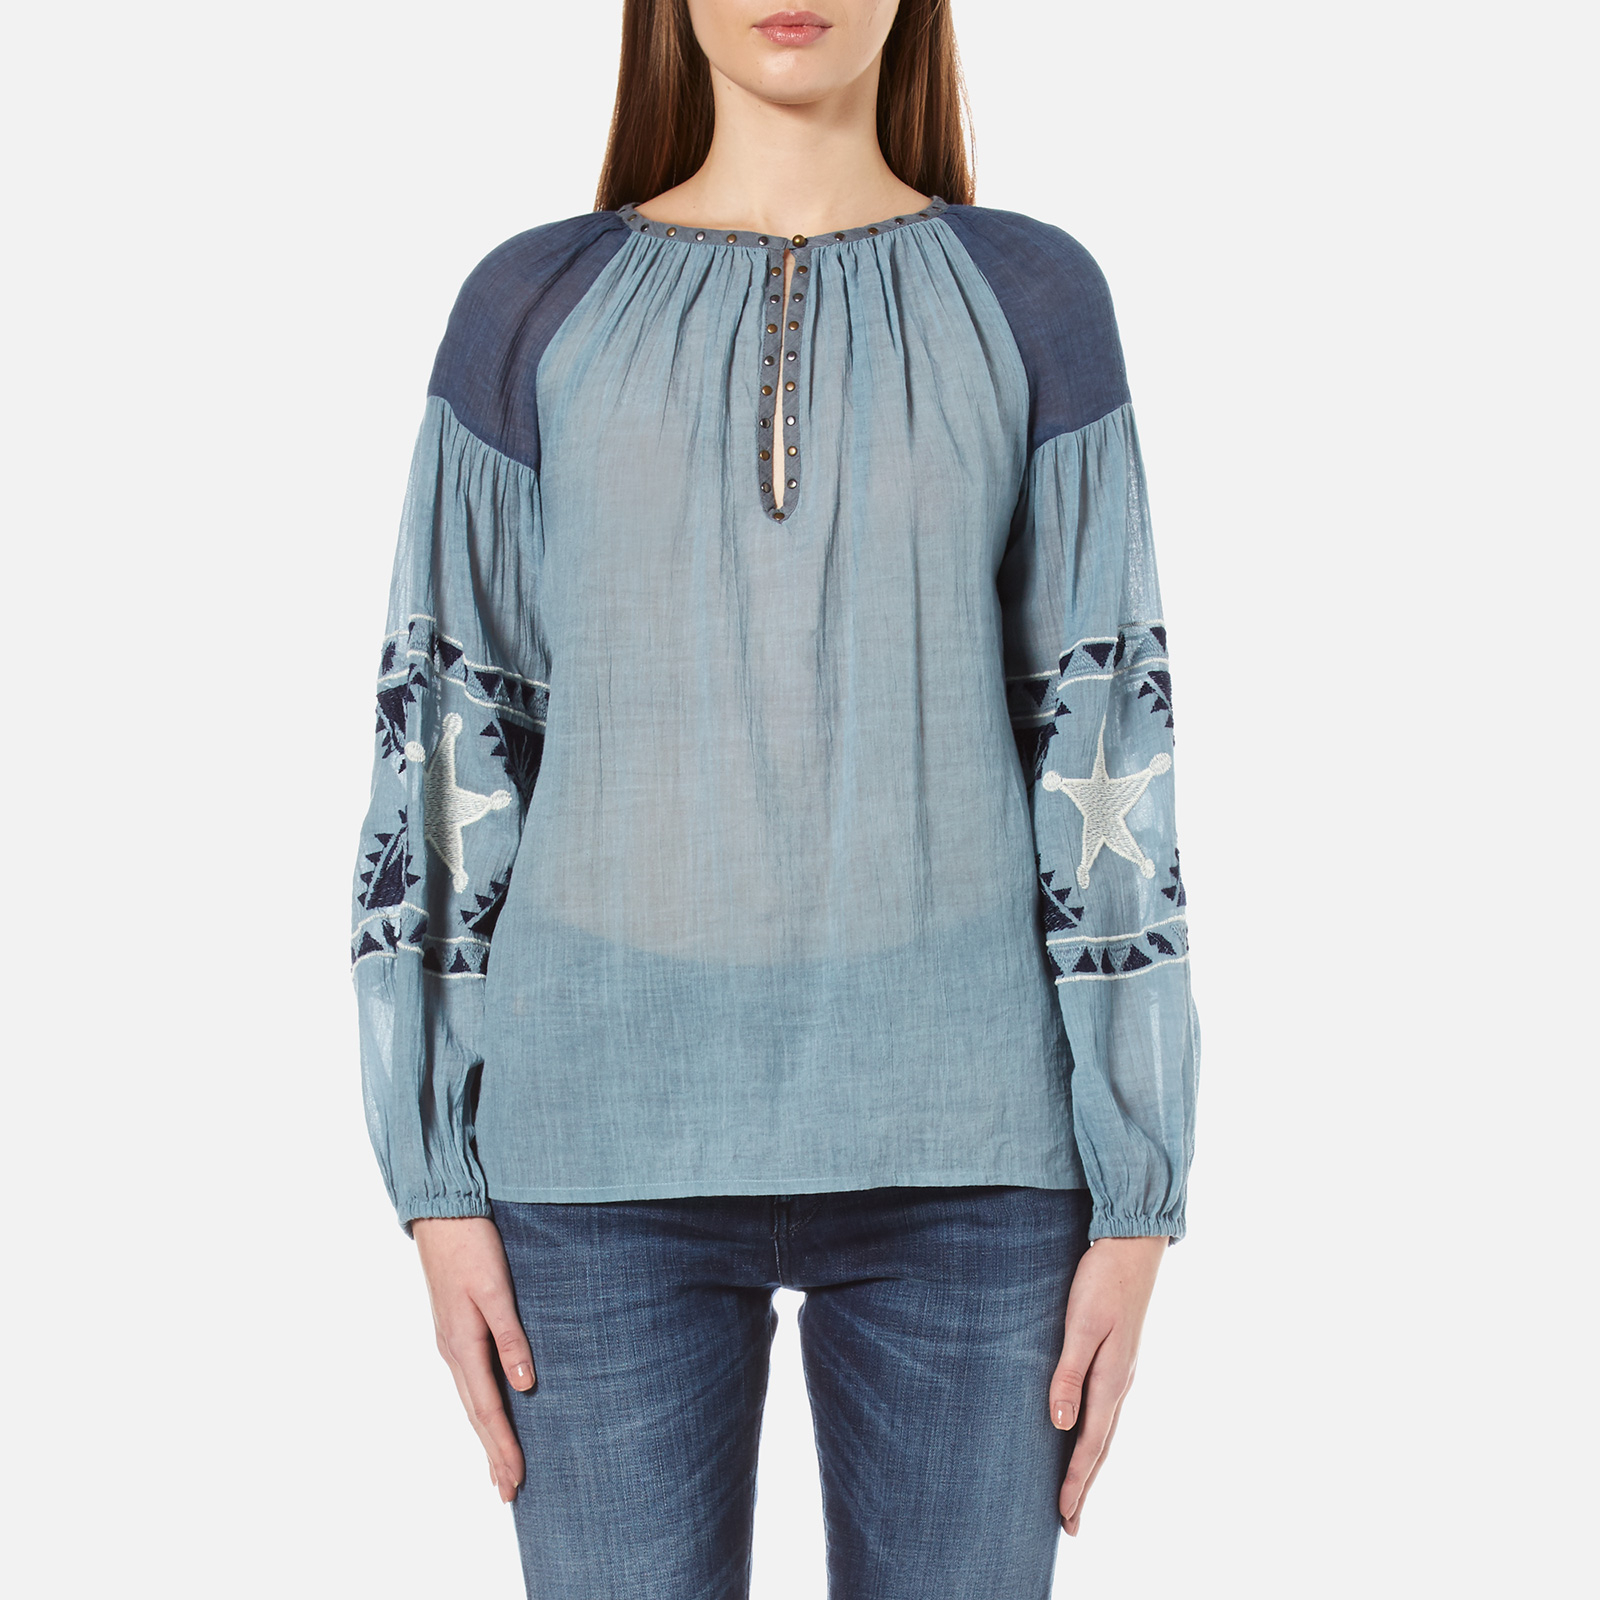 1a125001031 Maison Scotch Women's Sheer Cotton Tunic Top with Special Embroideries -  Blue - Free UK Delivery over £50